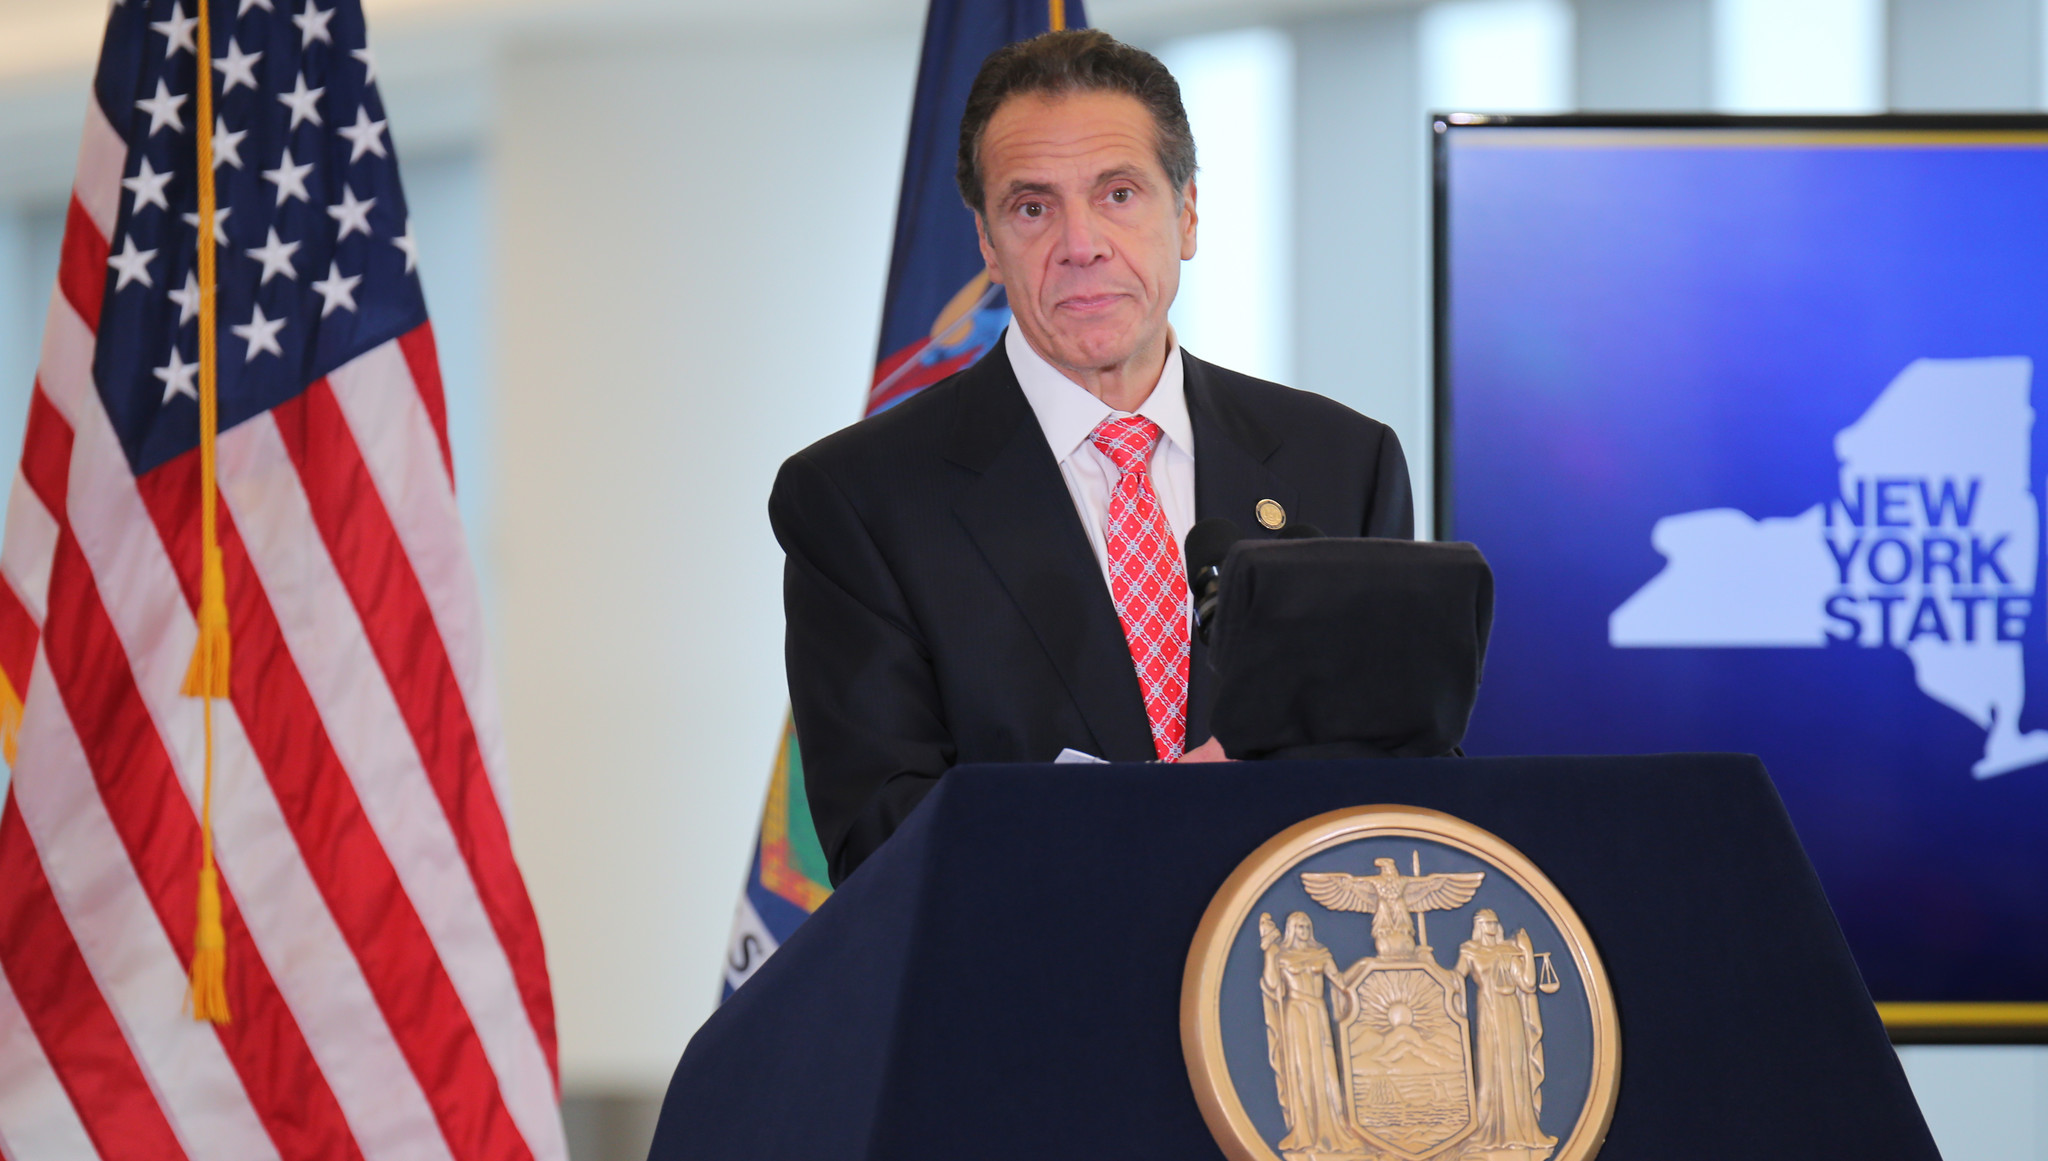 Cuomo calls for consultants to tell him why high speed rail is so expensive